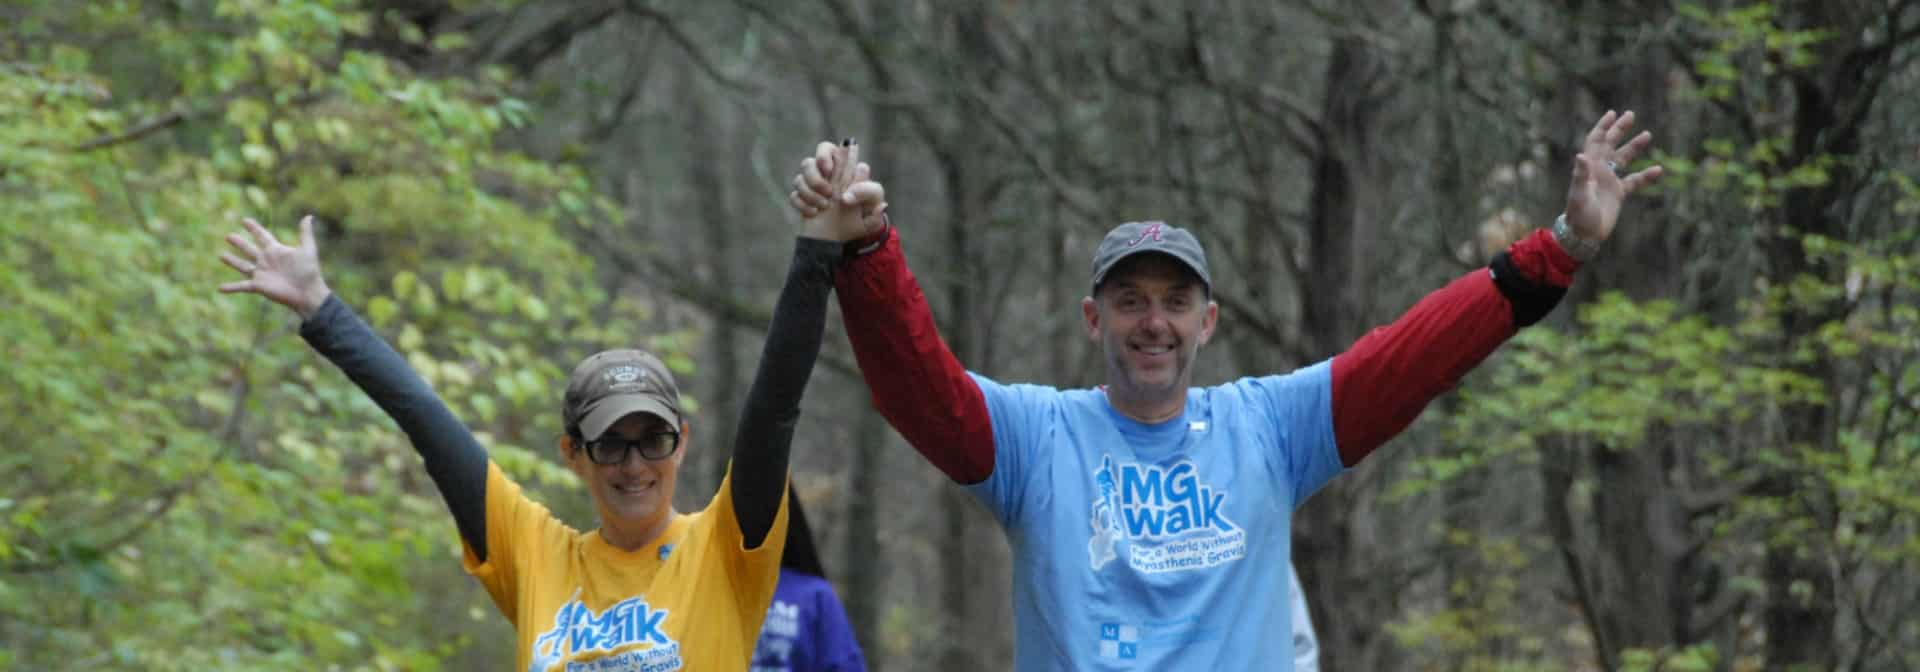 Tennessee MG Walk 2014